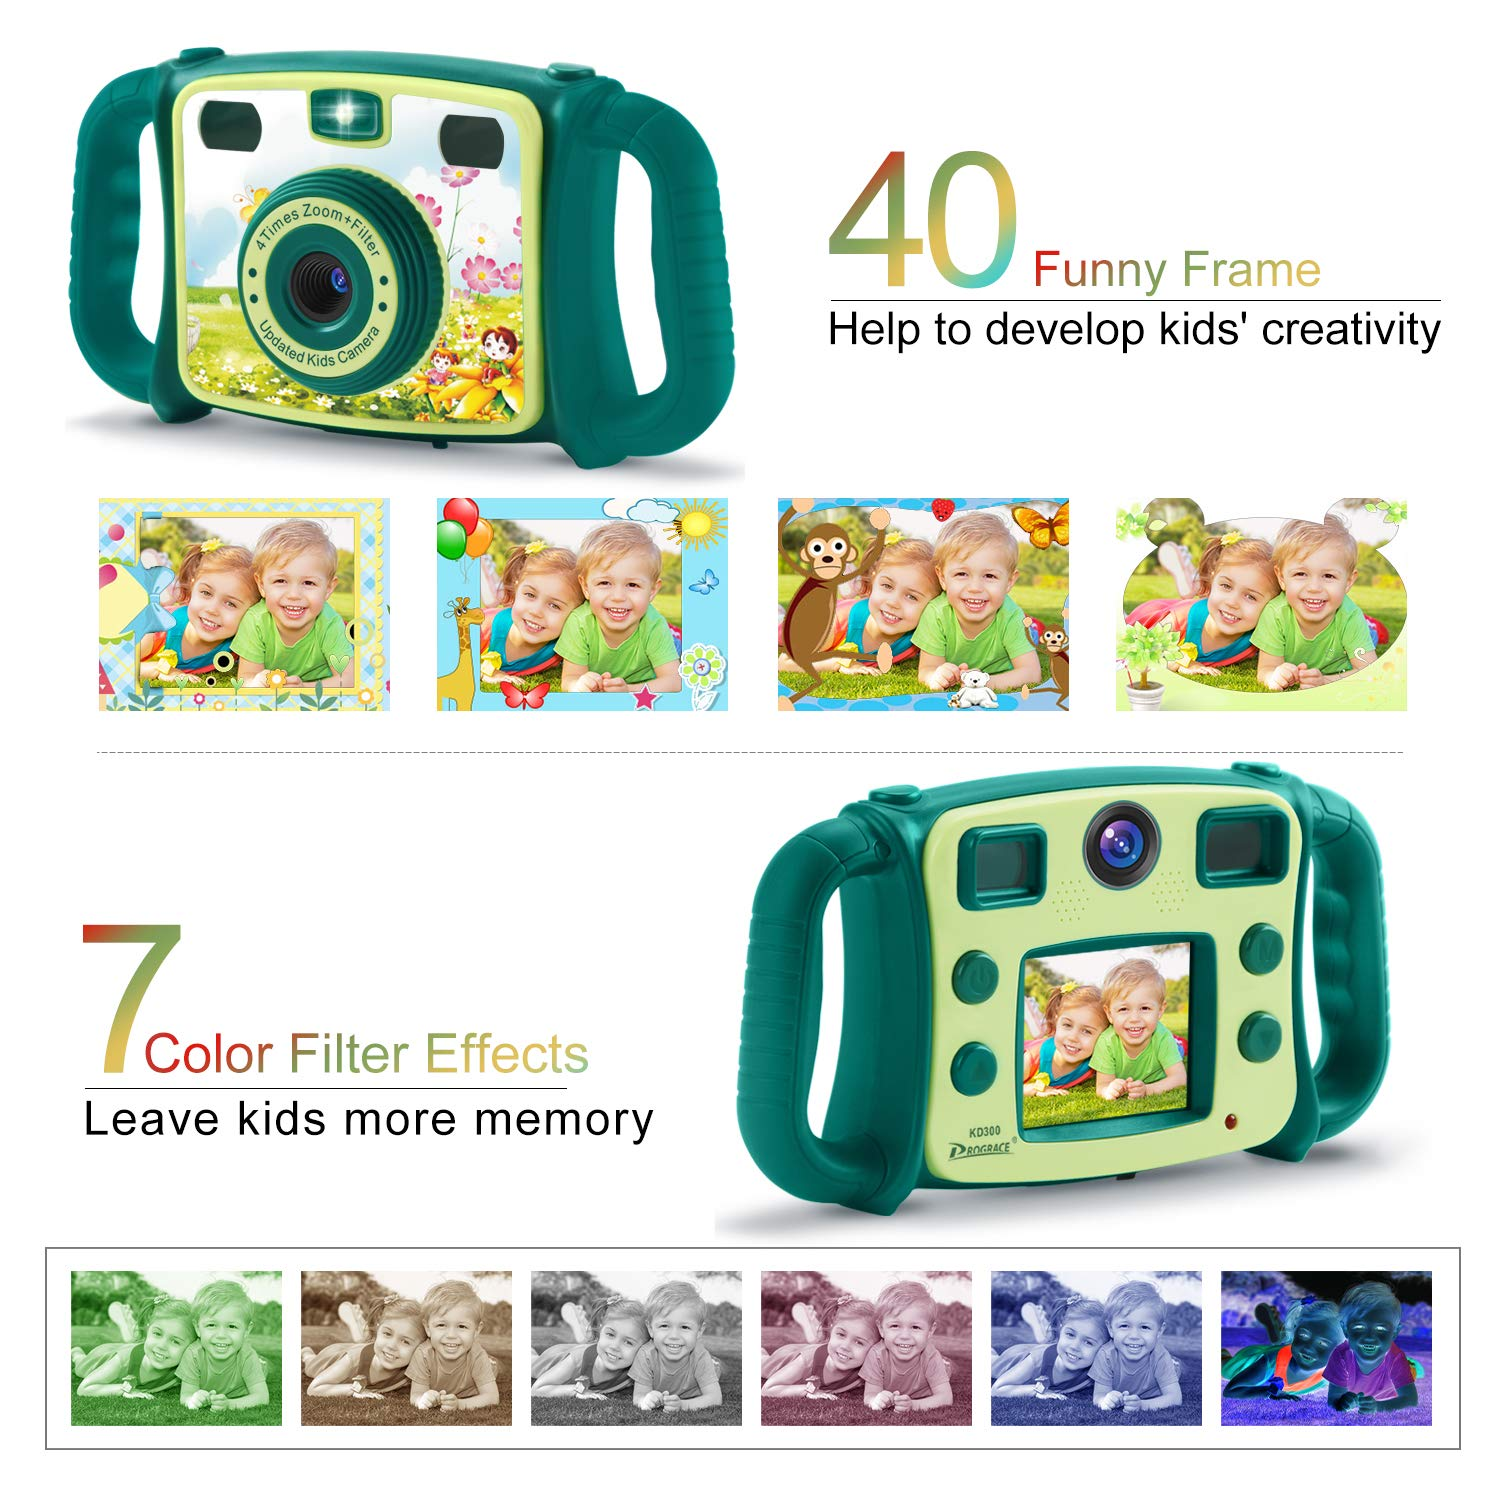 Prograce Kids Camera Dual Selfie Camera 1080P HD Video Recorder Digital Action Camera Camcorder for Boys Girls Gifts 2.0'' LCD Screen with 4X Digital Zoom and Funny Game(Green) by Prograce (Image #3)